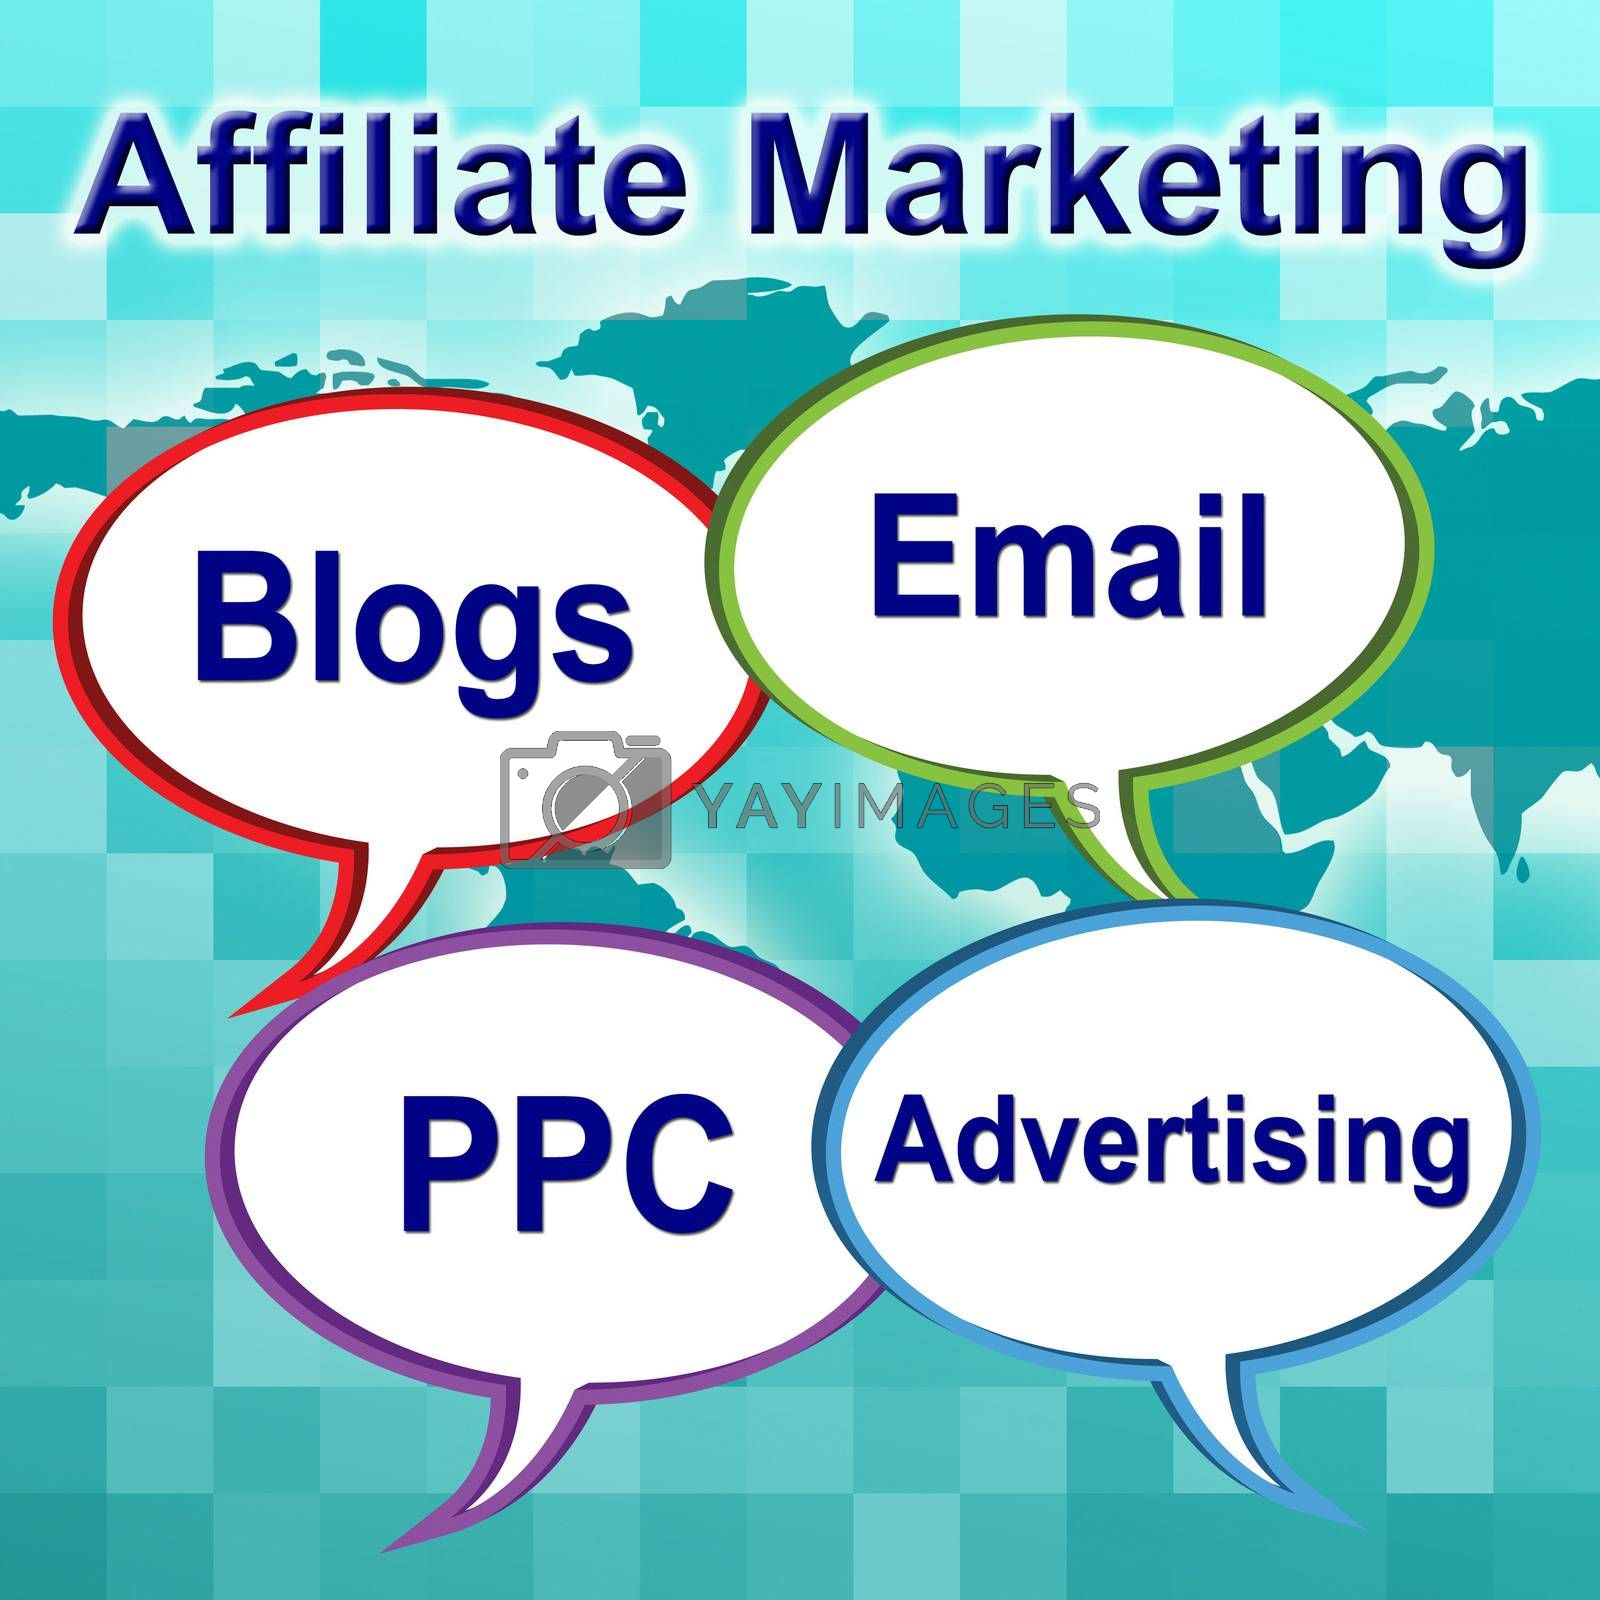 Affiliate Marketing Represents Join Forces And Associate by stuartmiles